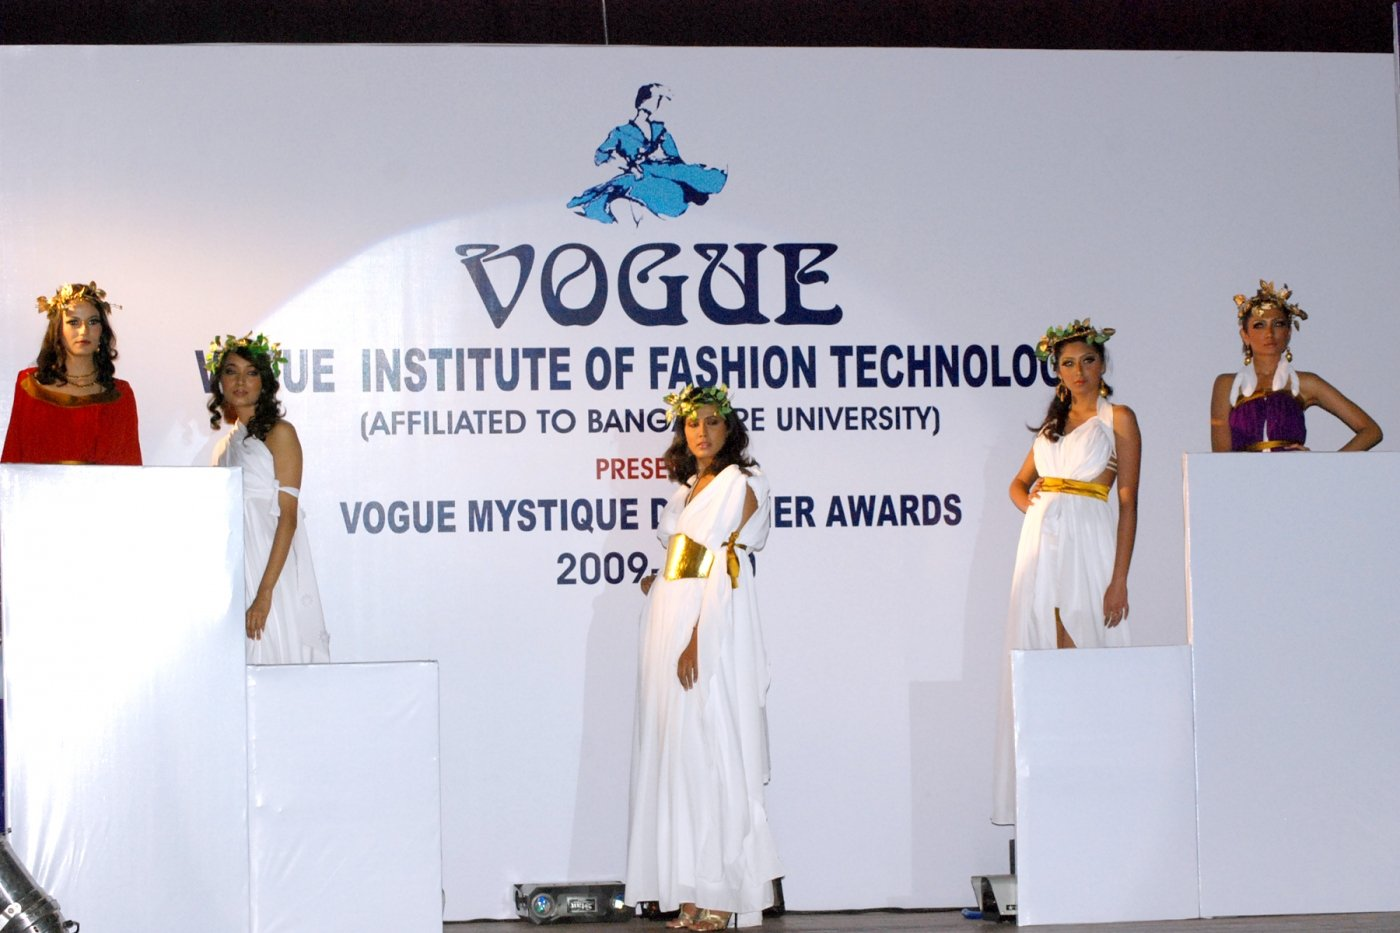 Vogue institute of fashion technology in bangalore 48